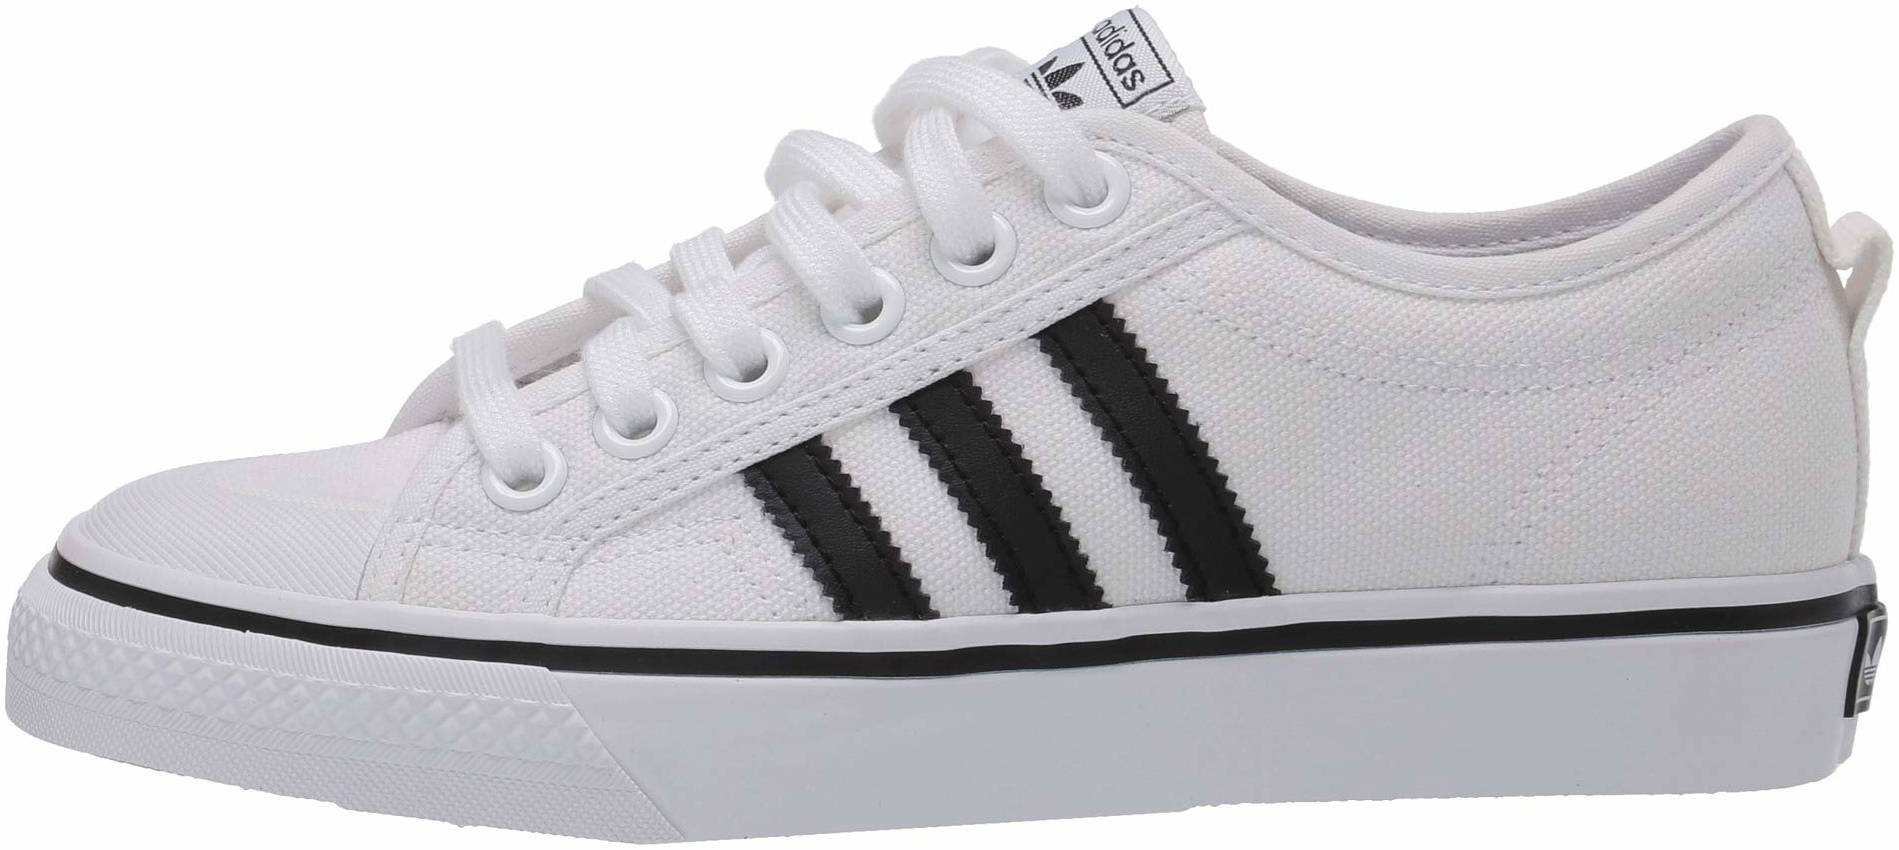 Adidas Nizza Low sneakers in 10 colors (only $37) | RunRepeat